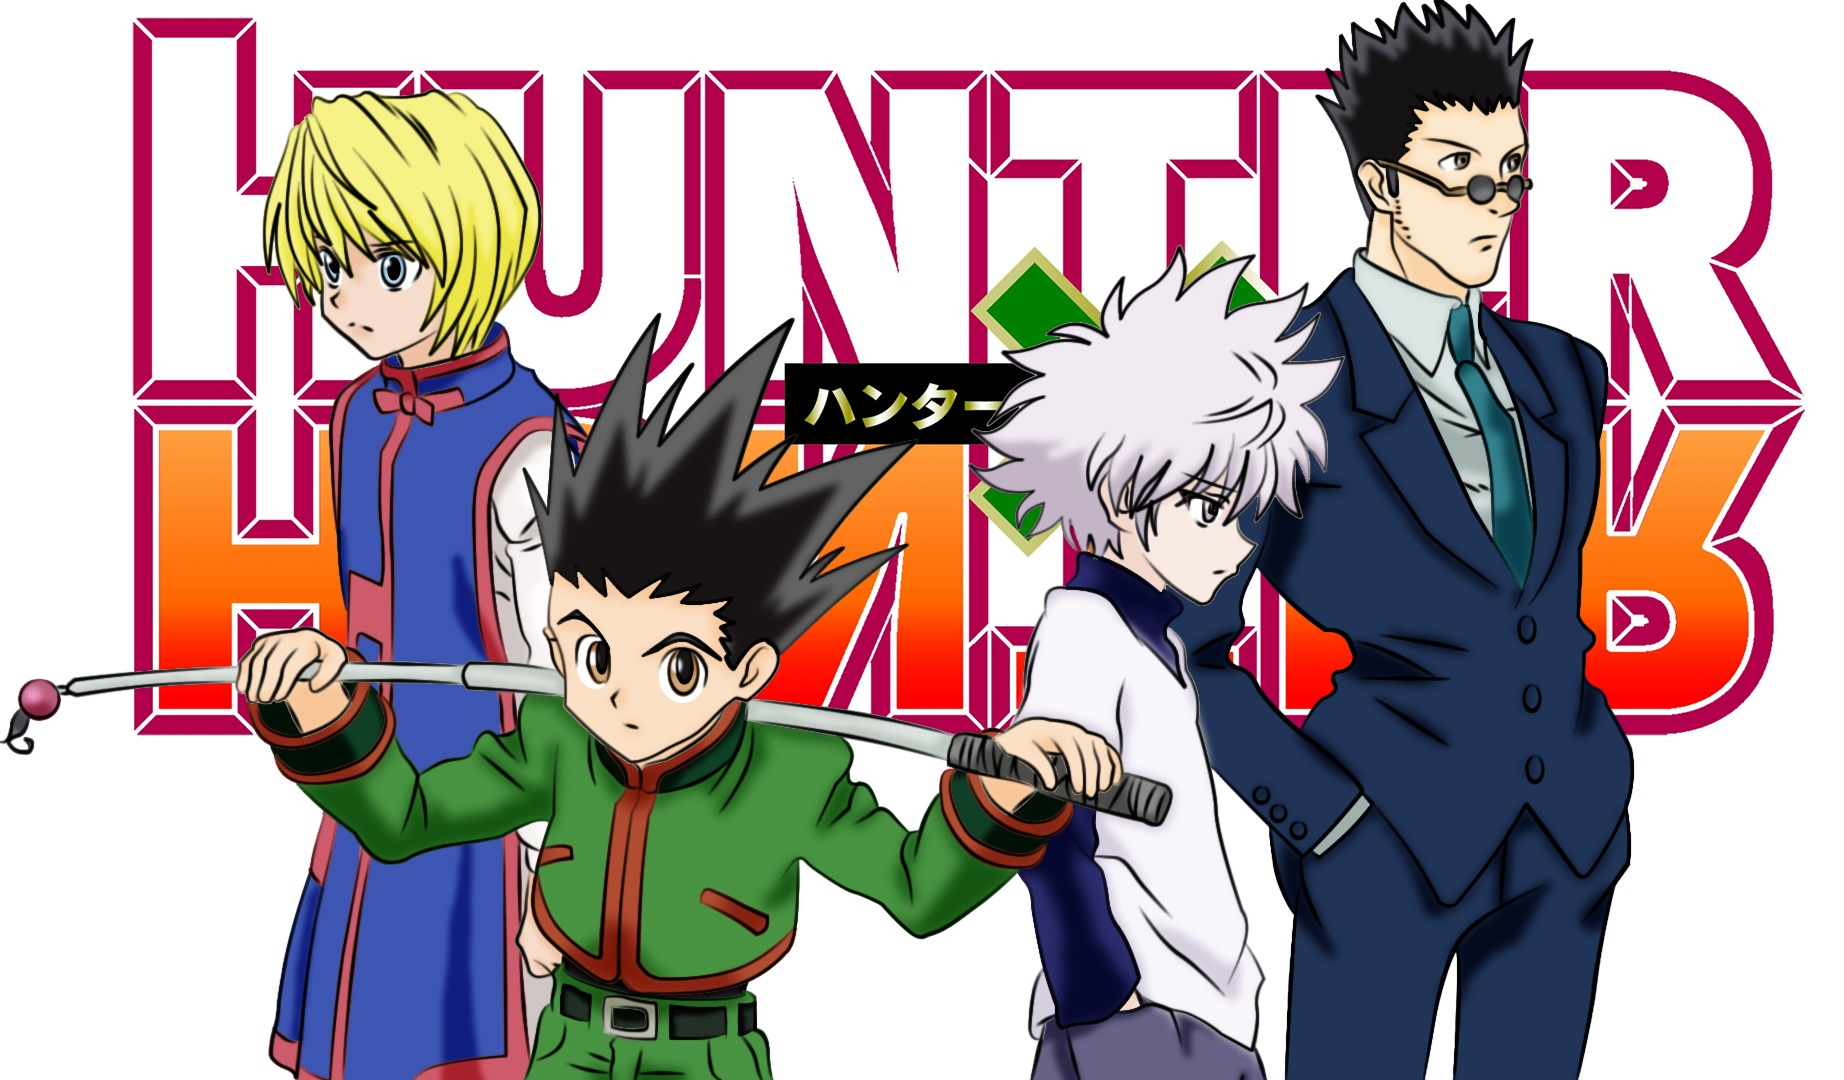 Hunter x Hunter Chapter 391 Release Date and Hiatus